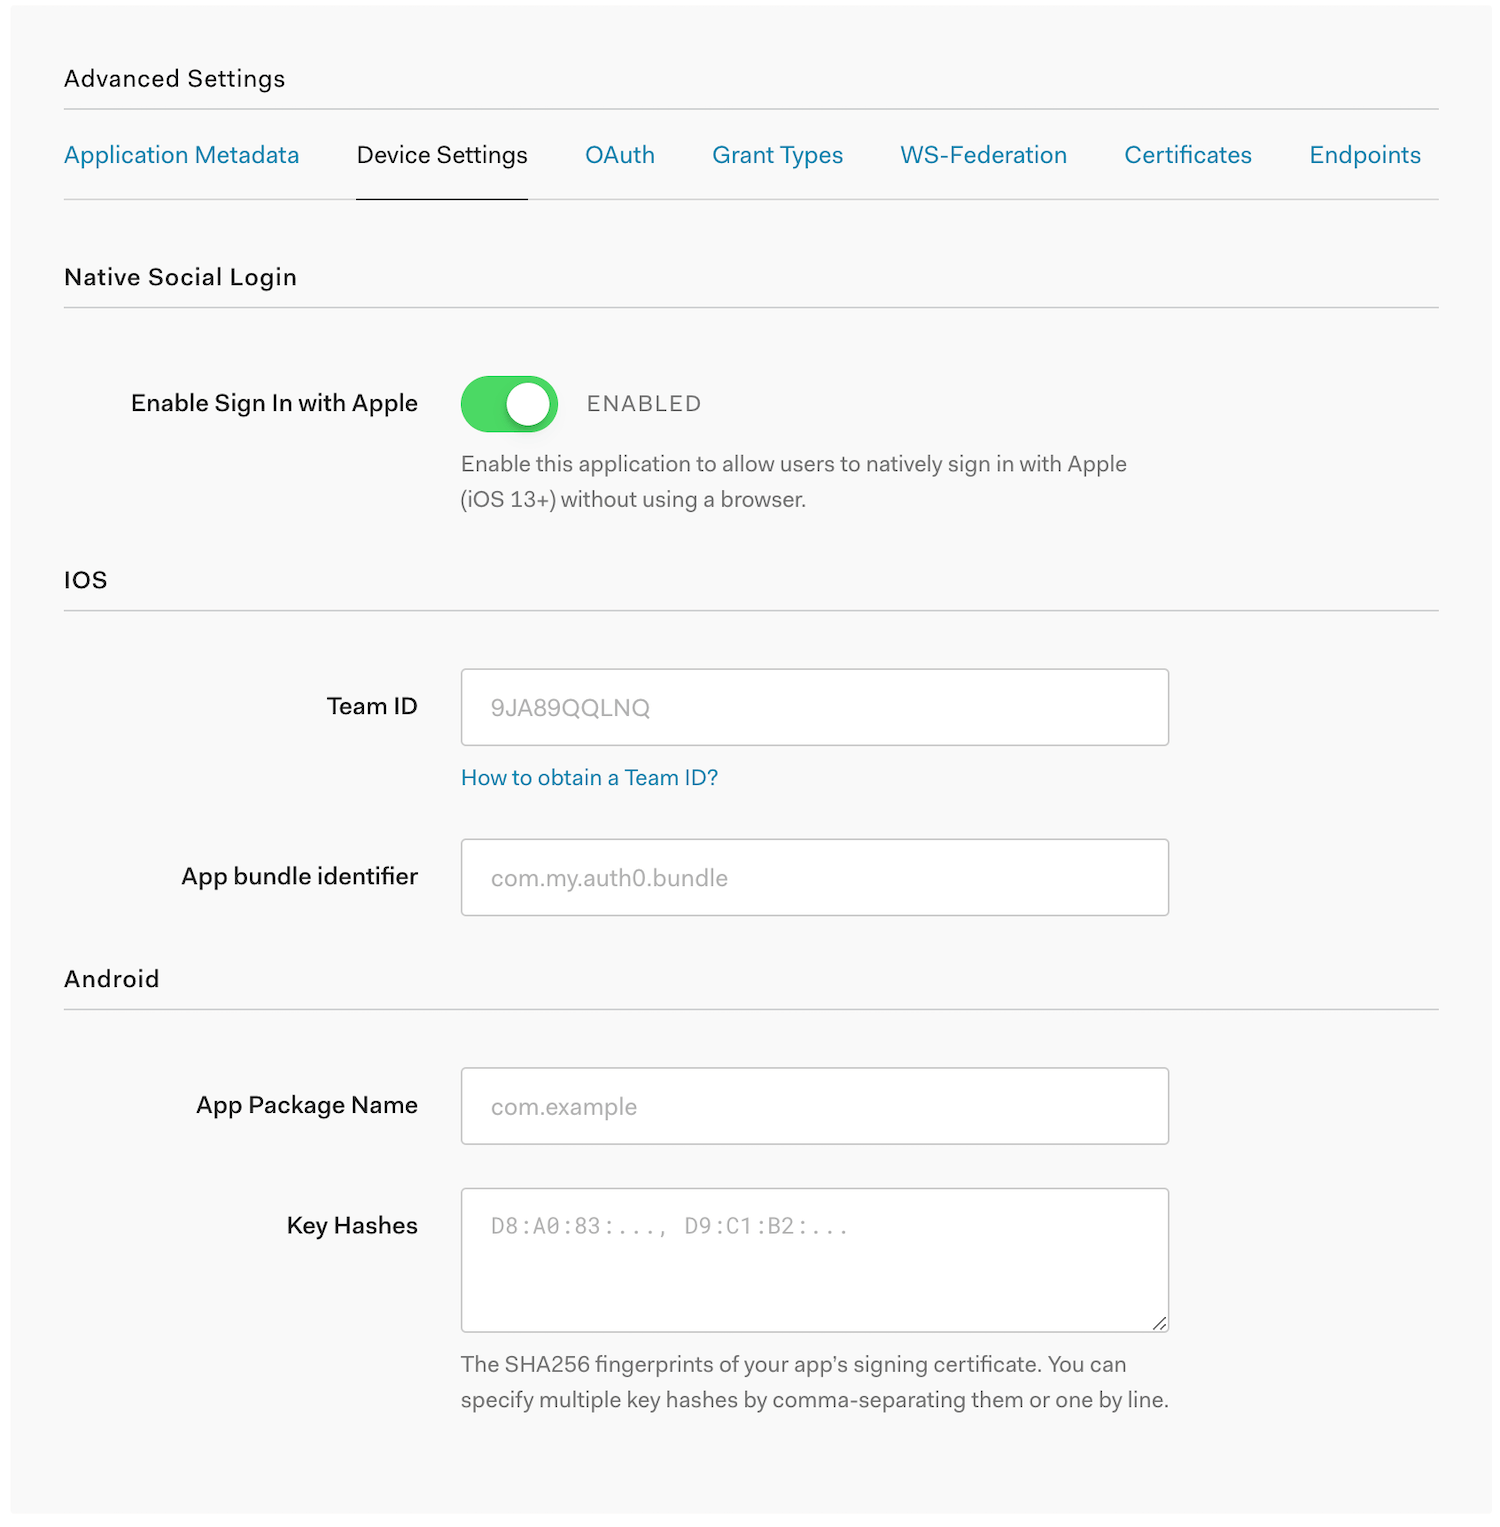 Application Client Settings: Advanced Device Settings